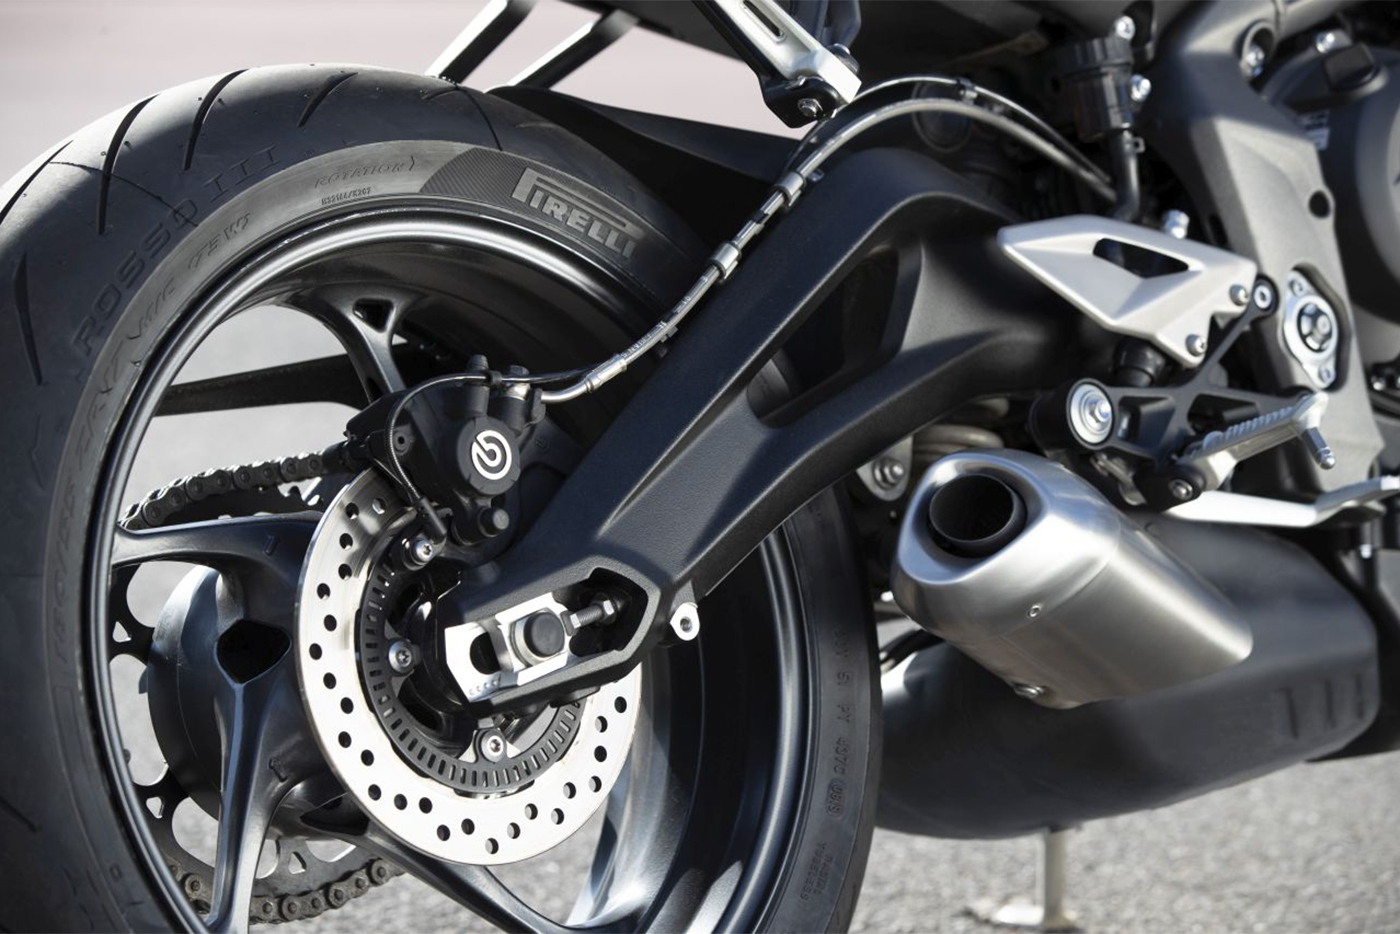 2020-triumph-street-triple-s-details-exhaust-and-r-9315.jpg